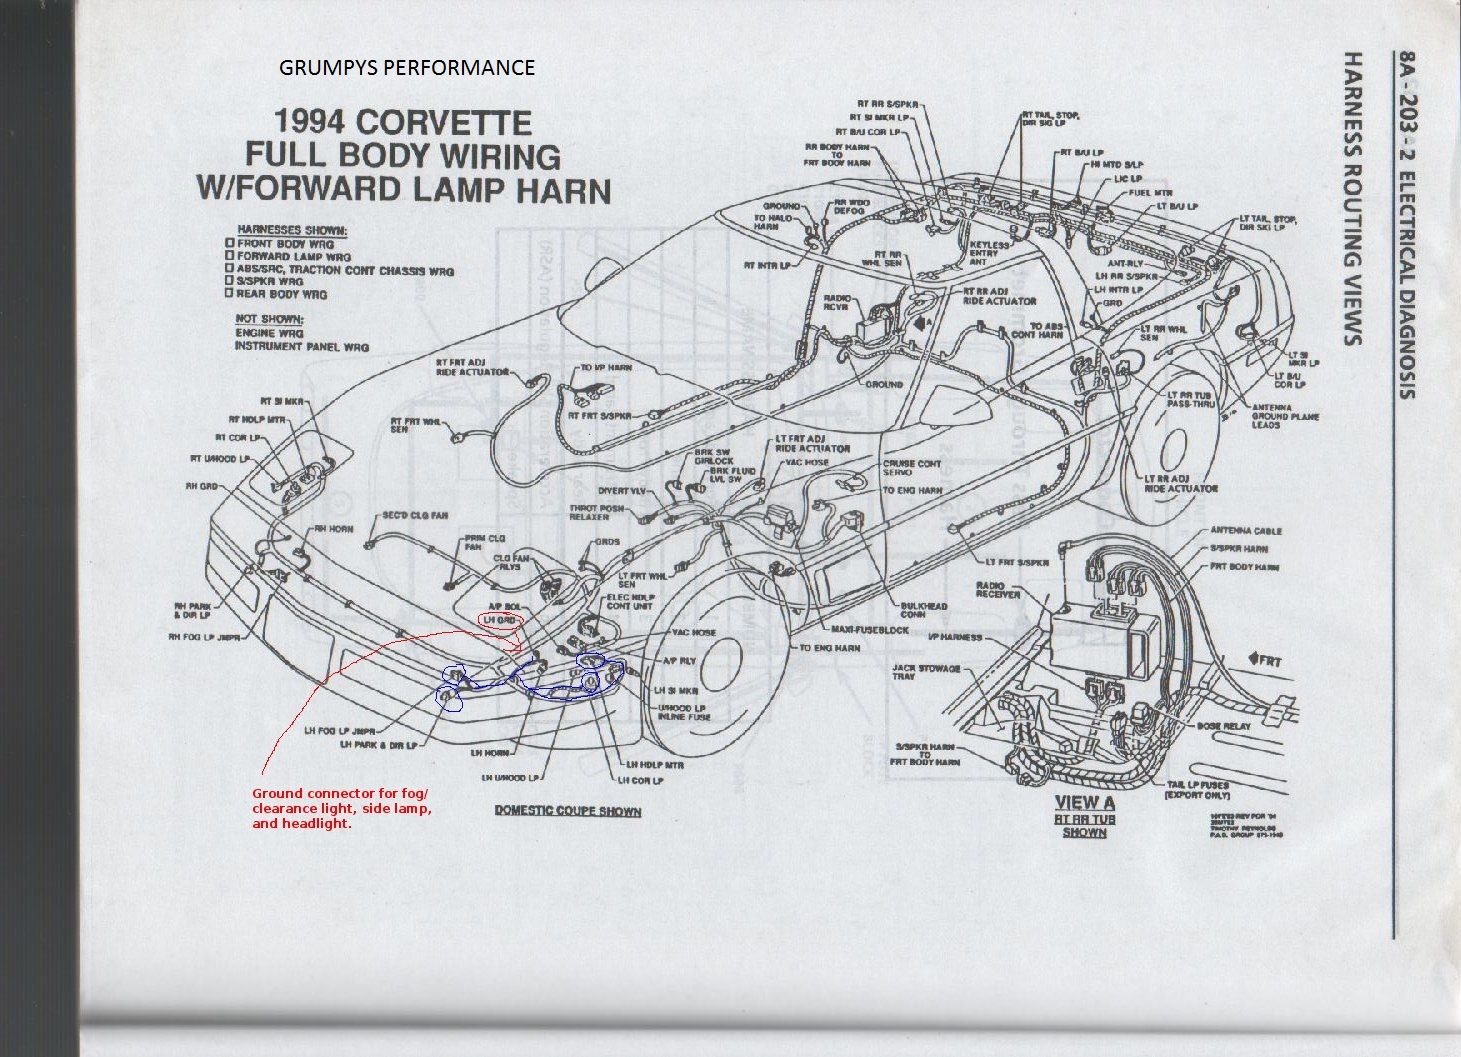 Mounting An Effective Trans Cooler On A C4 Corvette Grumpys Windstar Ecm Wiring Diagram Img